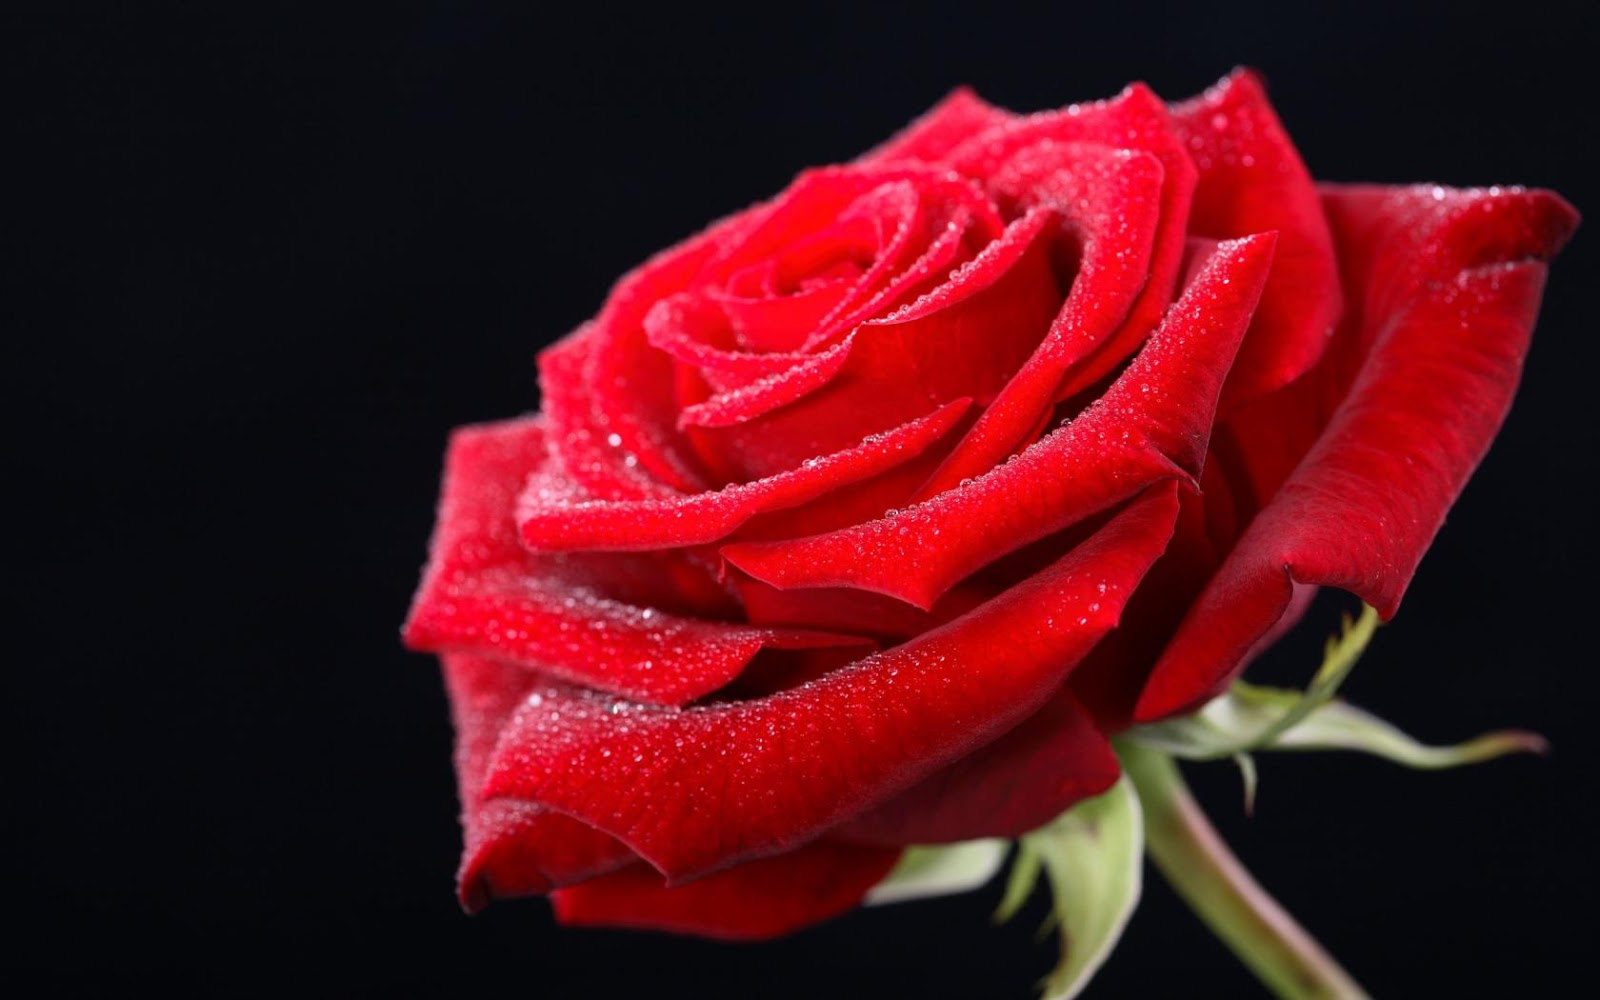 Red rose HD wallpaper as a gift on on valentines day 2016 1600x1000